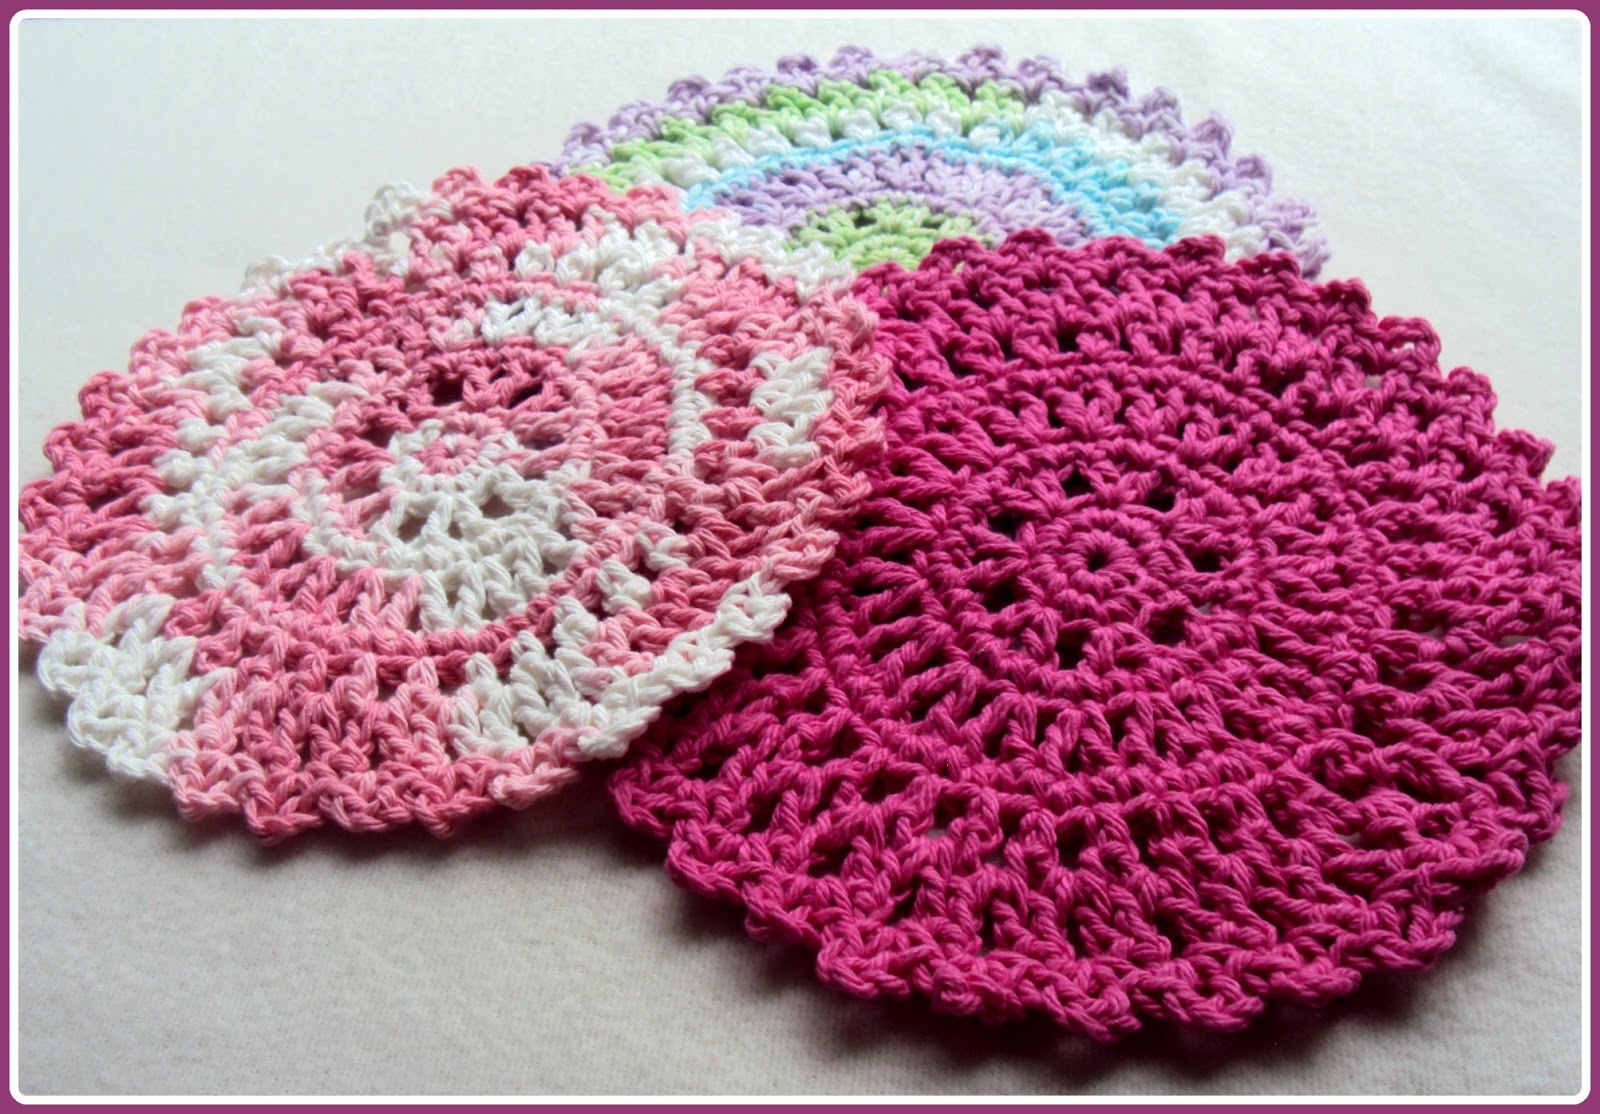 Thread Crochet Patterns : ... up quickly and beautifully when using both acrylic or cotton yarns